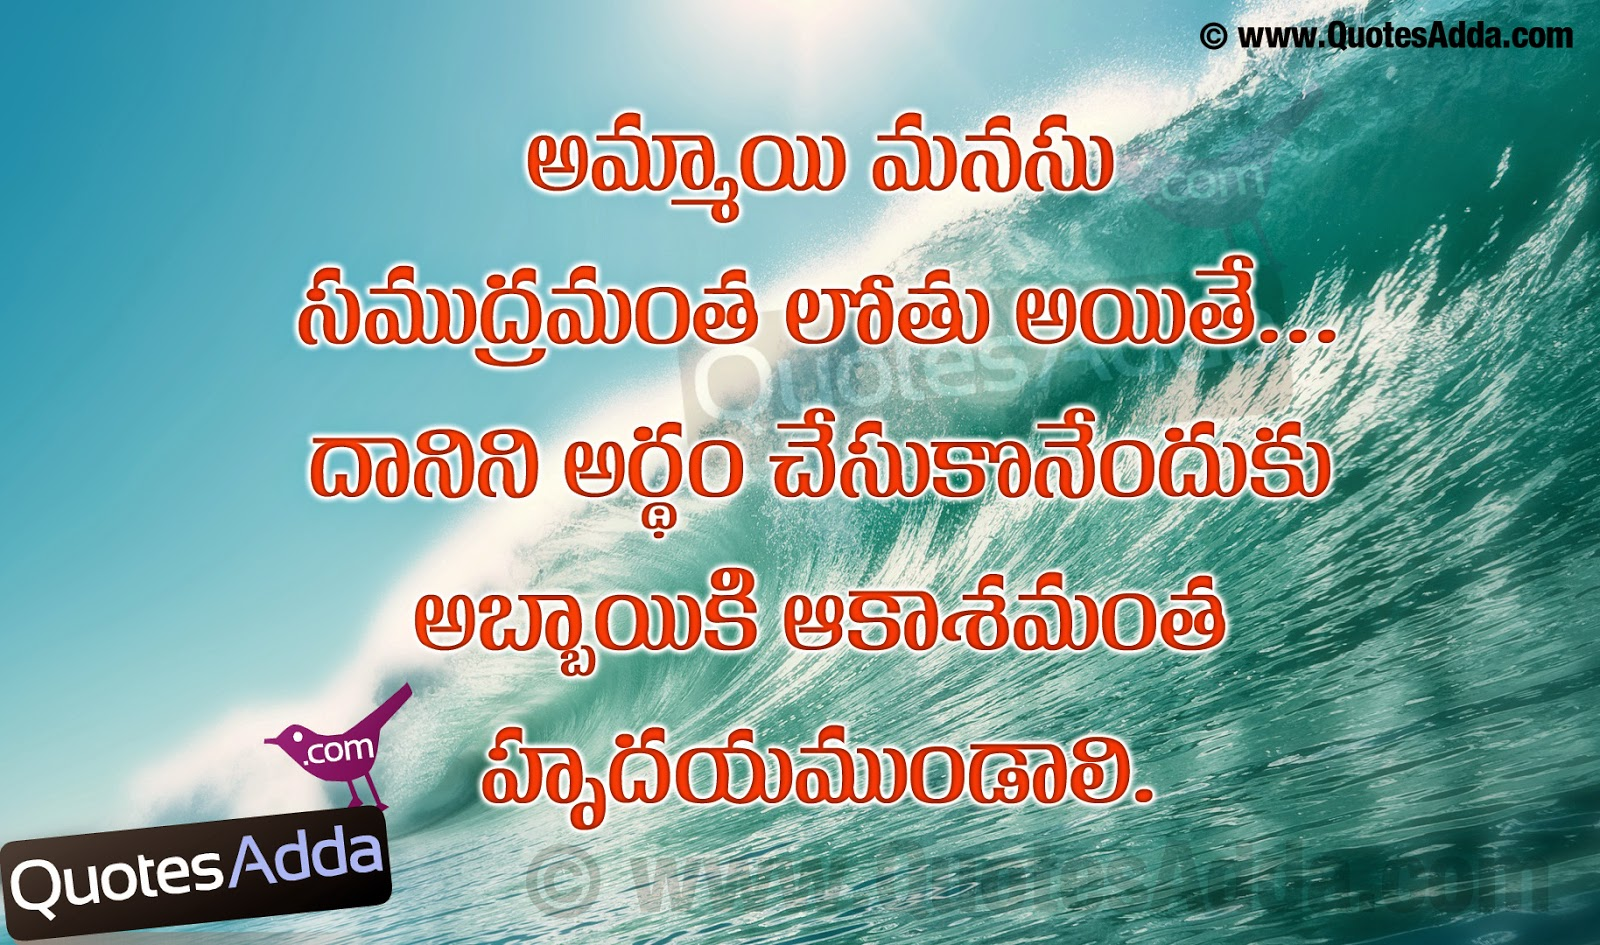 Telugu Love Quotes Magnificent Telugunewlovequotationsjun29Quotesadda 1600×945